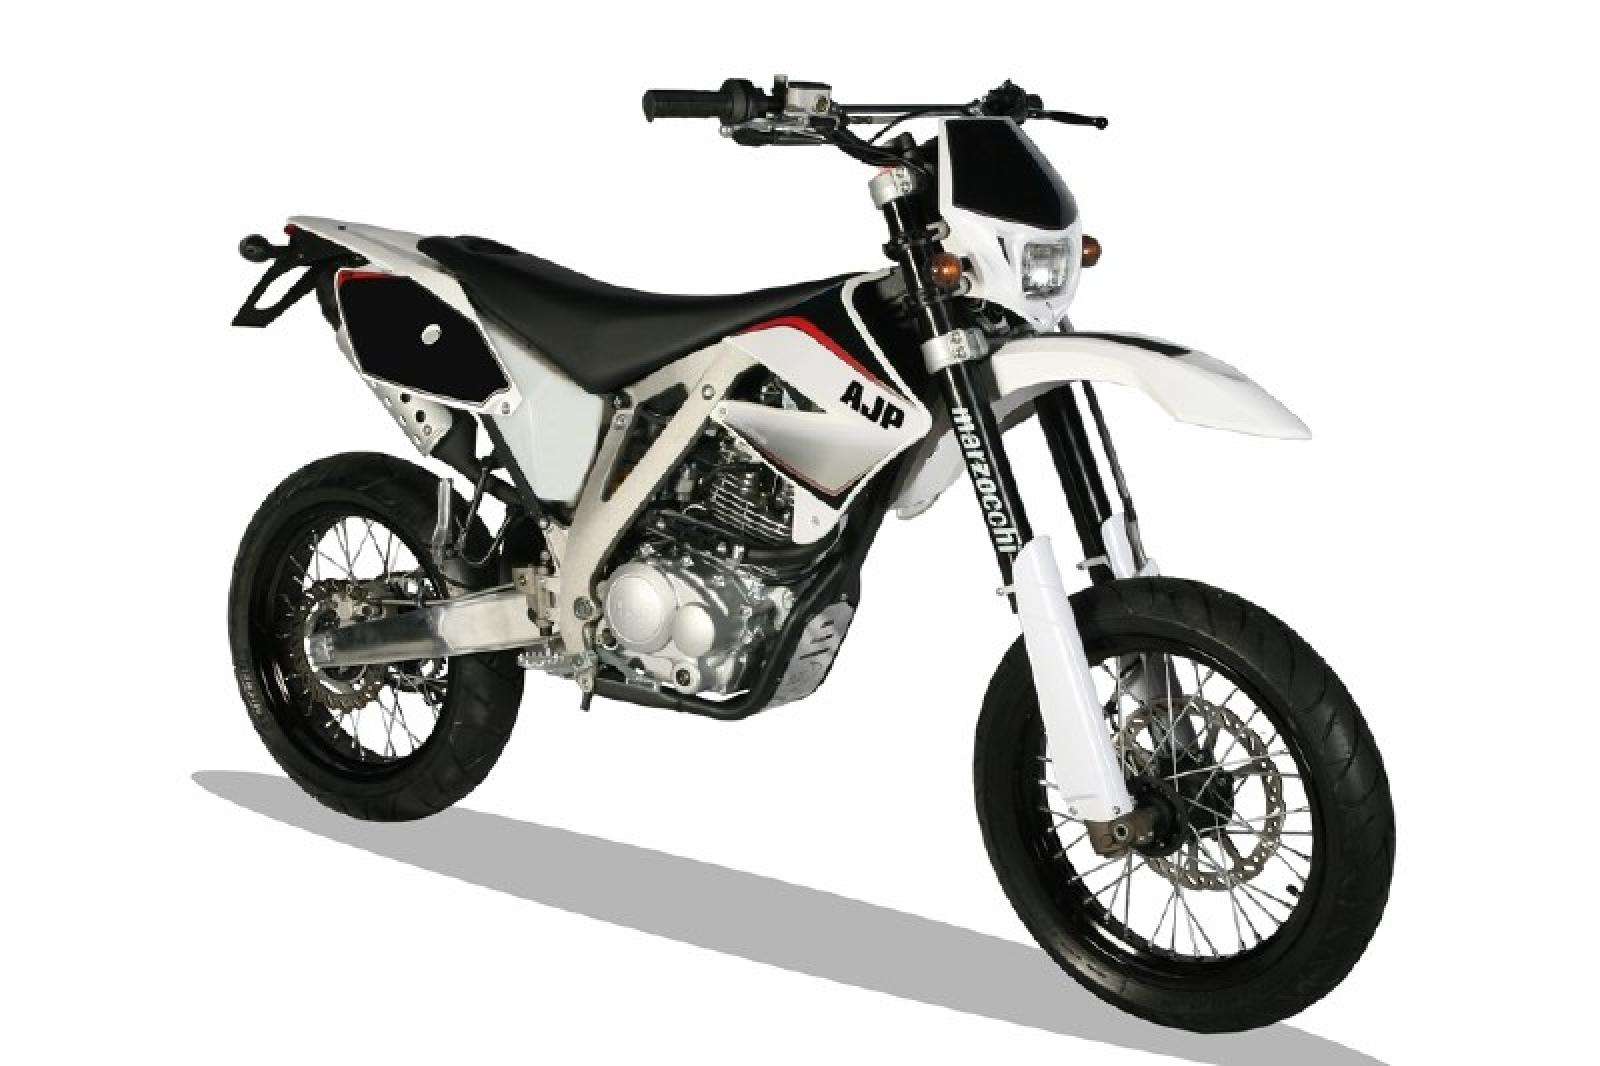 2015 ajp pr4 125 supermotard pics specs and information. Black Bedroom Furniture Sets. Home Design Ideas